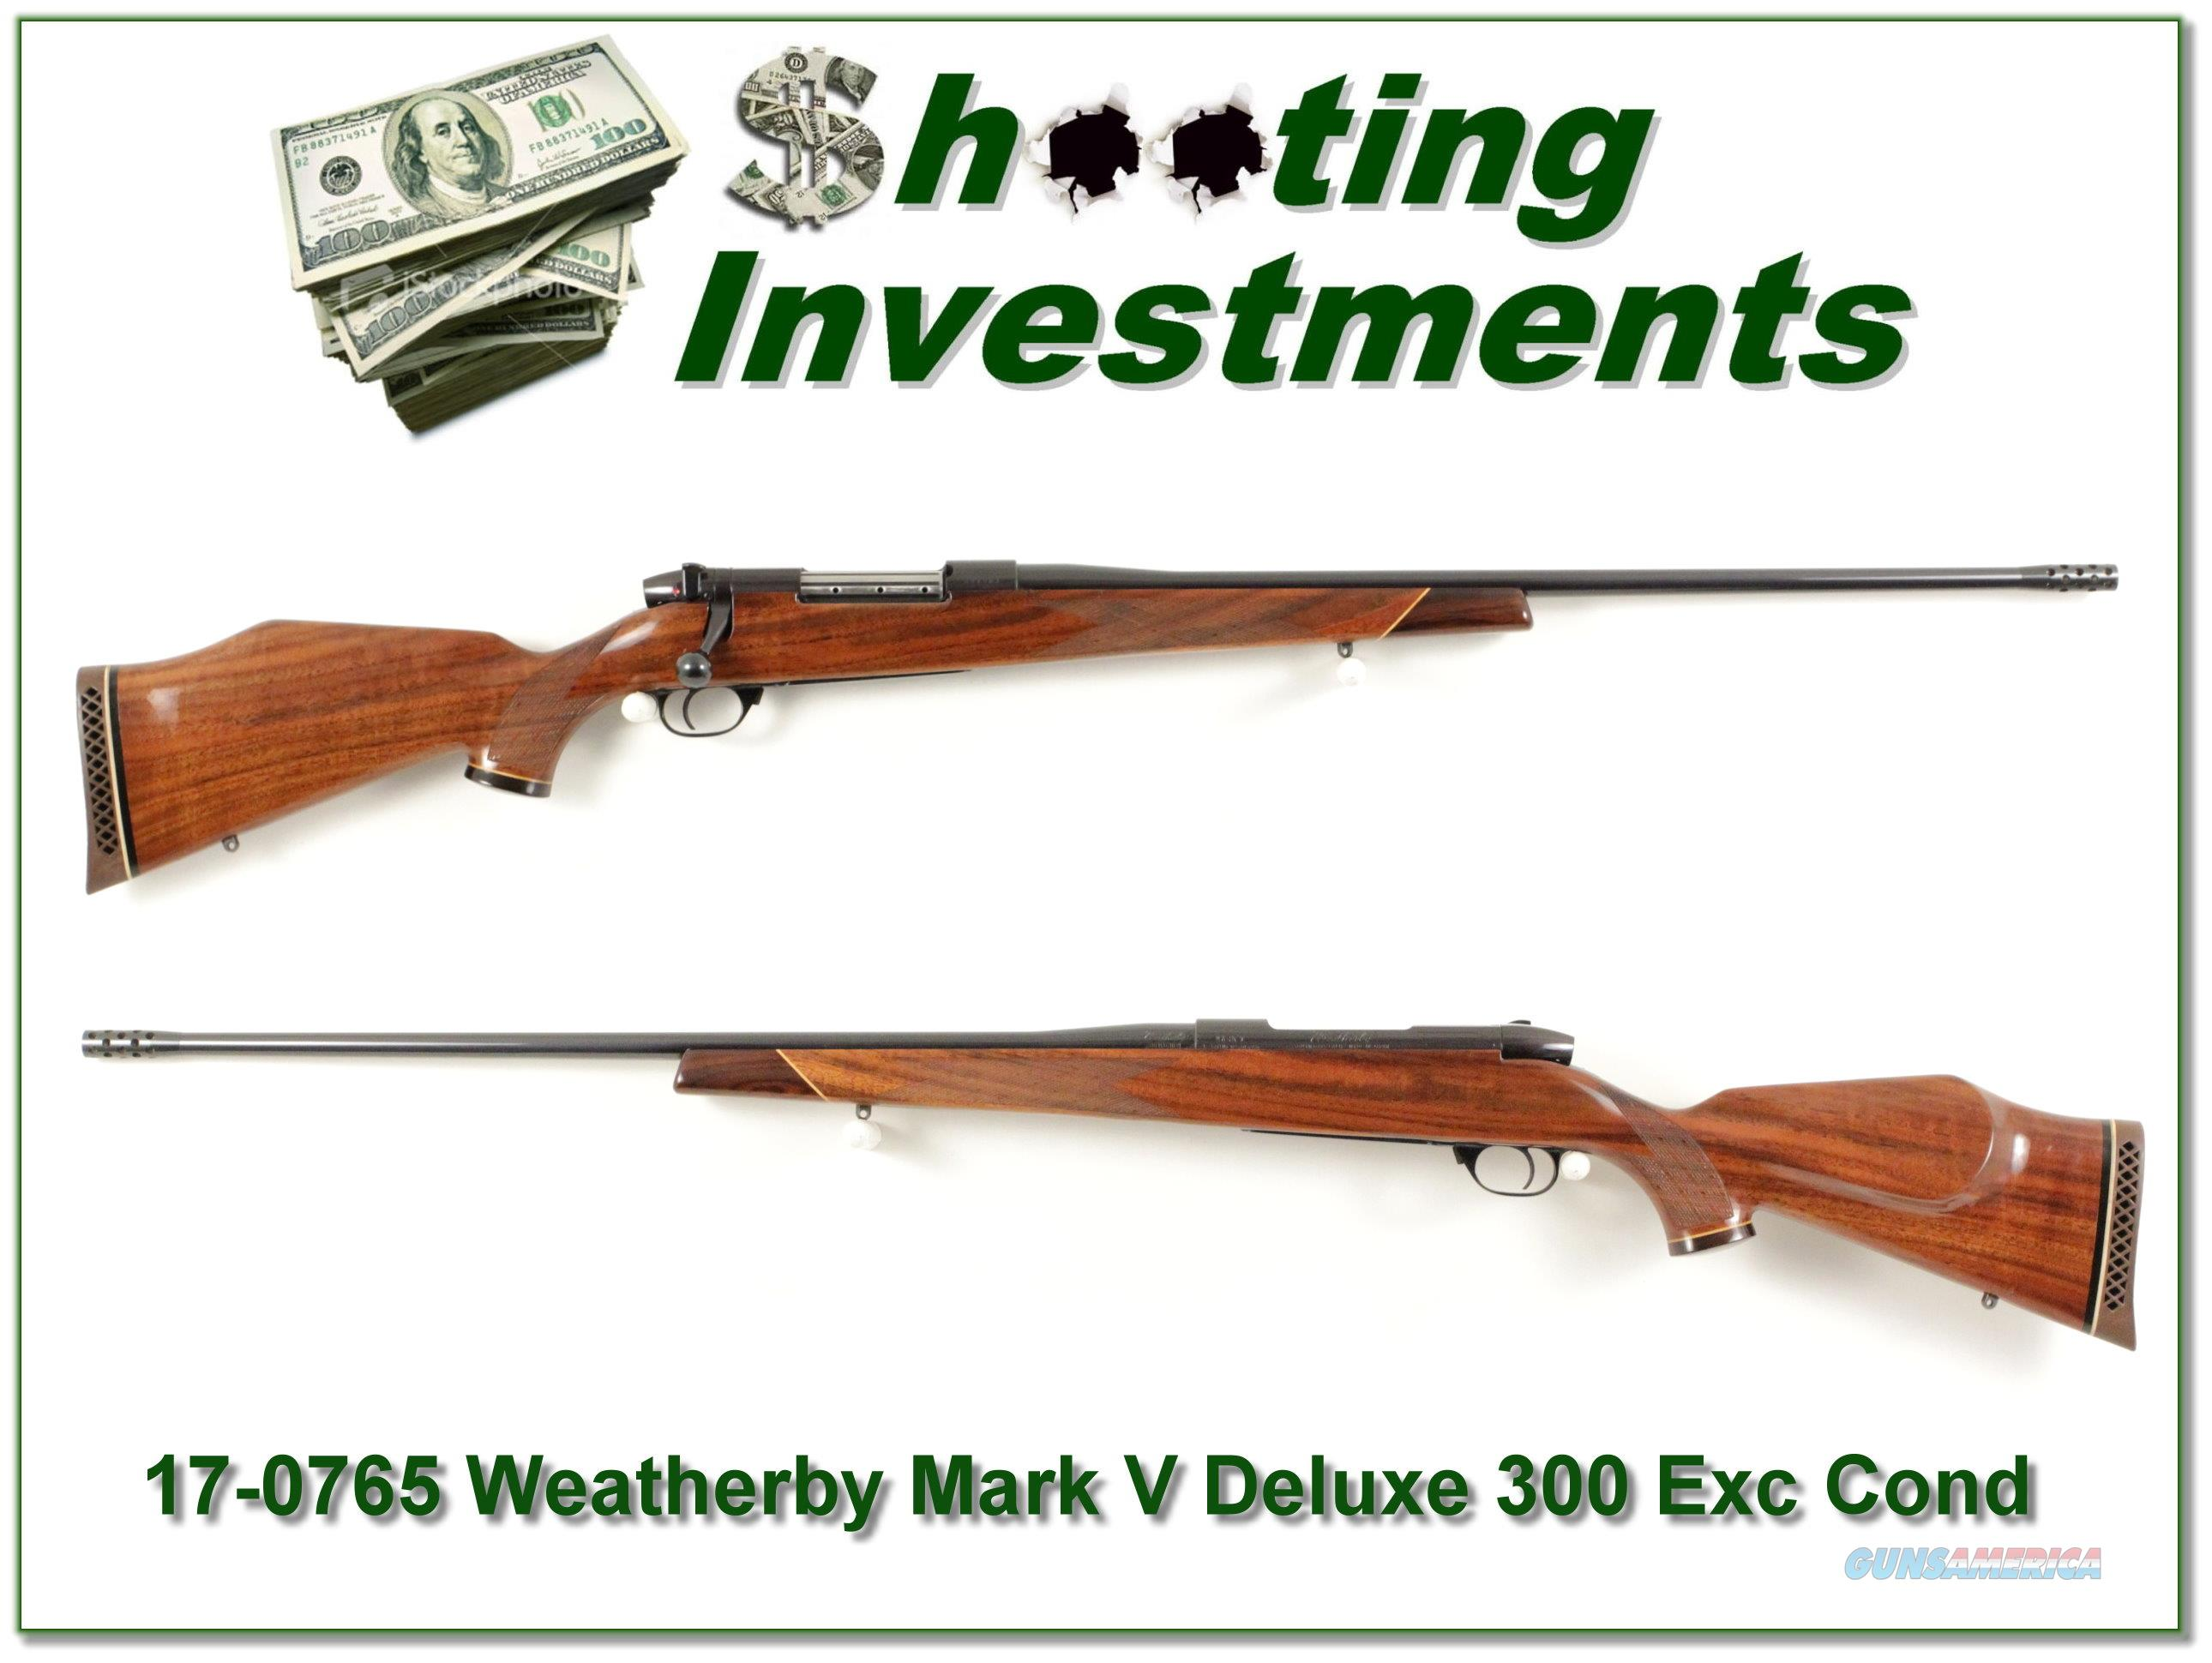 Weatherby Mark V Deluxe 300 Wthy Mag Accubreak Exc Cond!  Guns > Rifles > Weatherby Rifles > Sporting